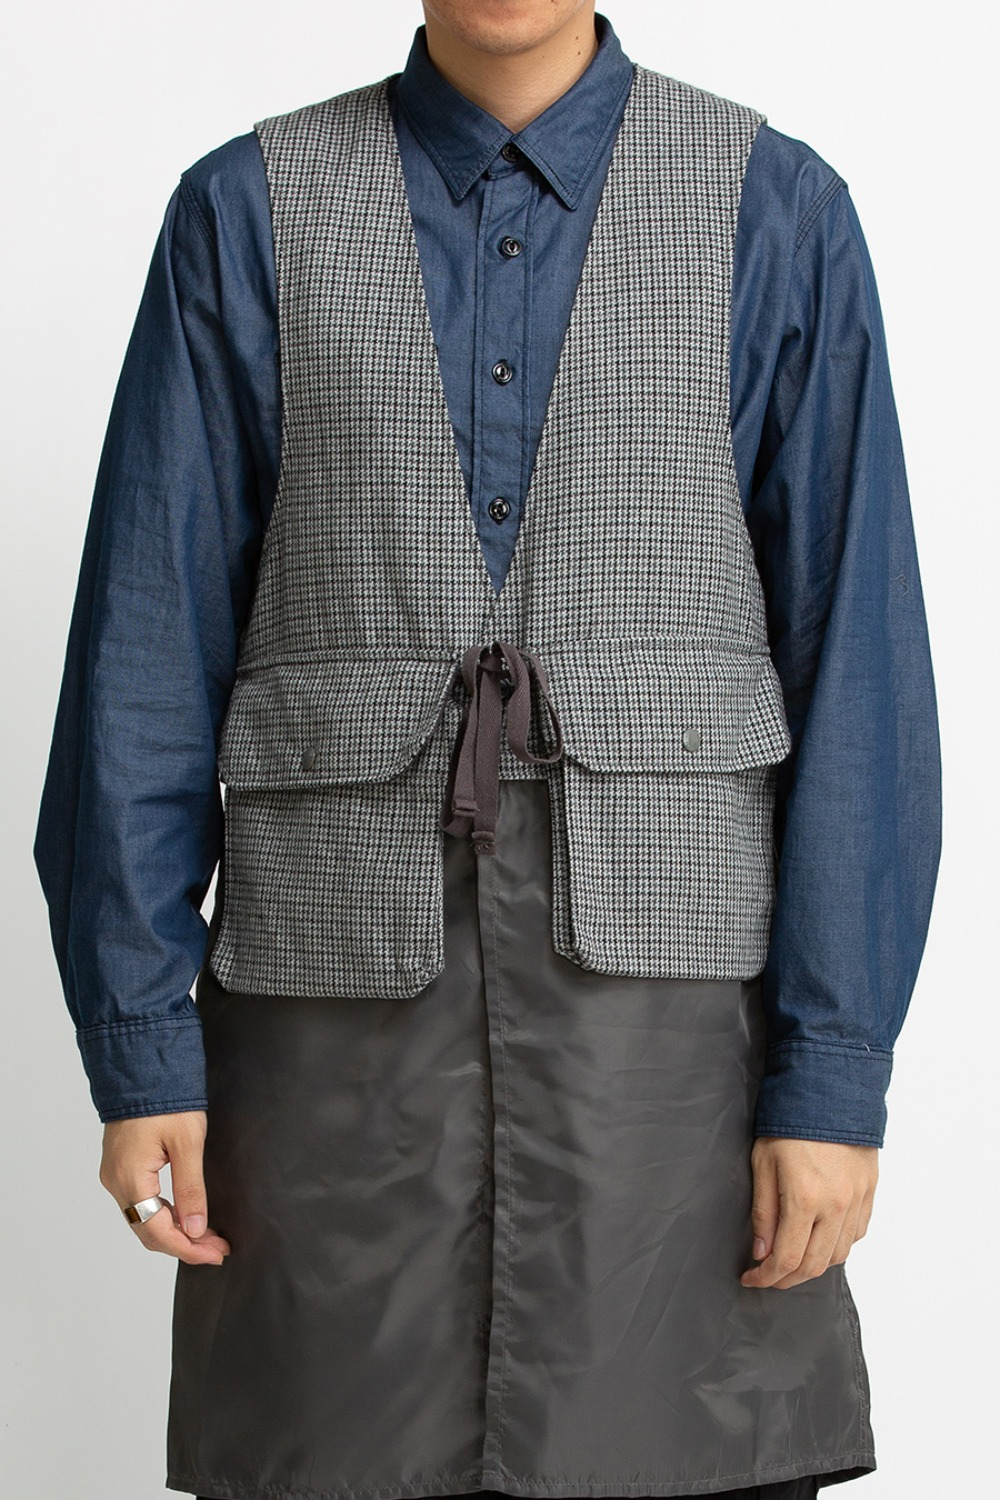 LONG FOWL VEST GREY WOOL POLY GUNCLUB